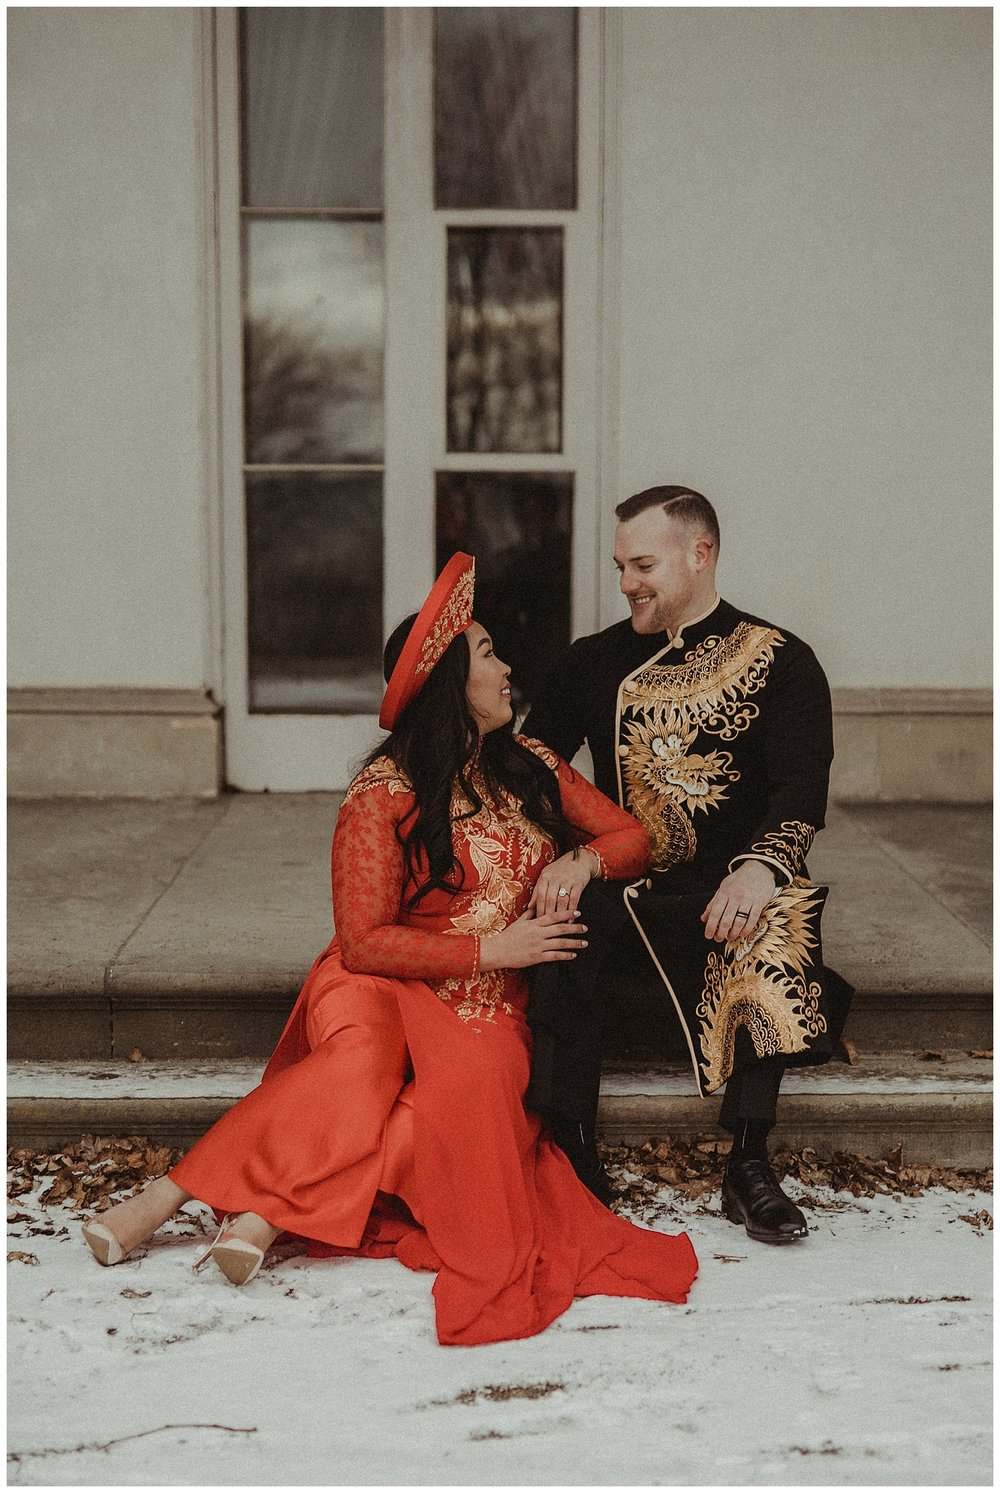 Katie Marie Photography | Hamilton Ontario Wedding Photographer | Hamilton Engagement Session | HamOnt | Vietnamese Engagement Session | Traditional Outfit Engagement Session | Dundurn Castle_0018.jpg